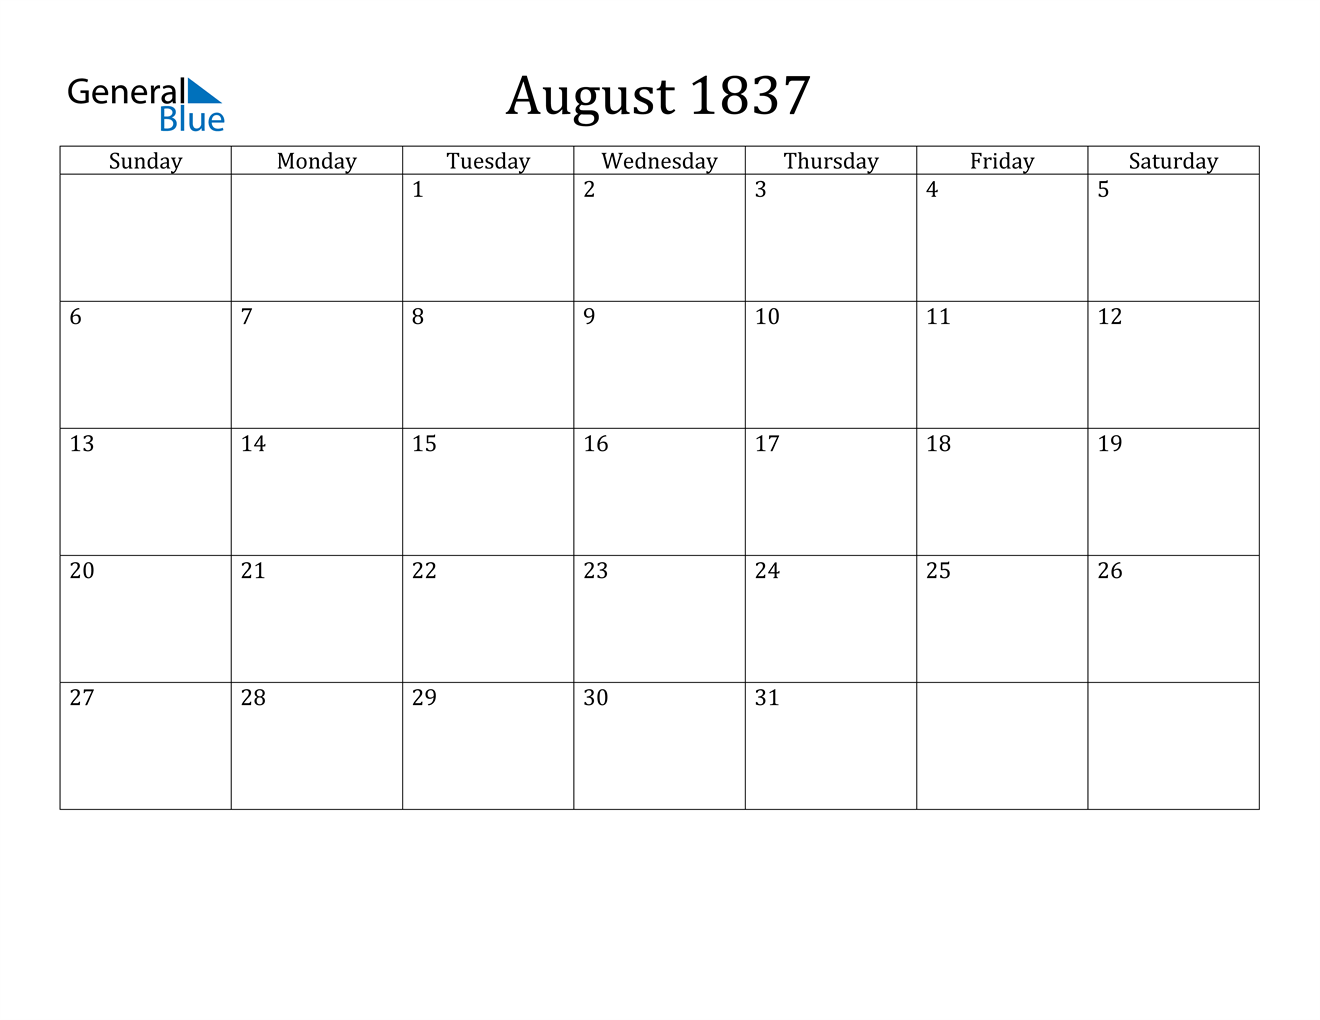 Image of August 1837 Calendar